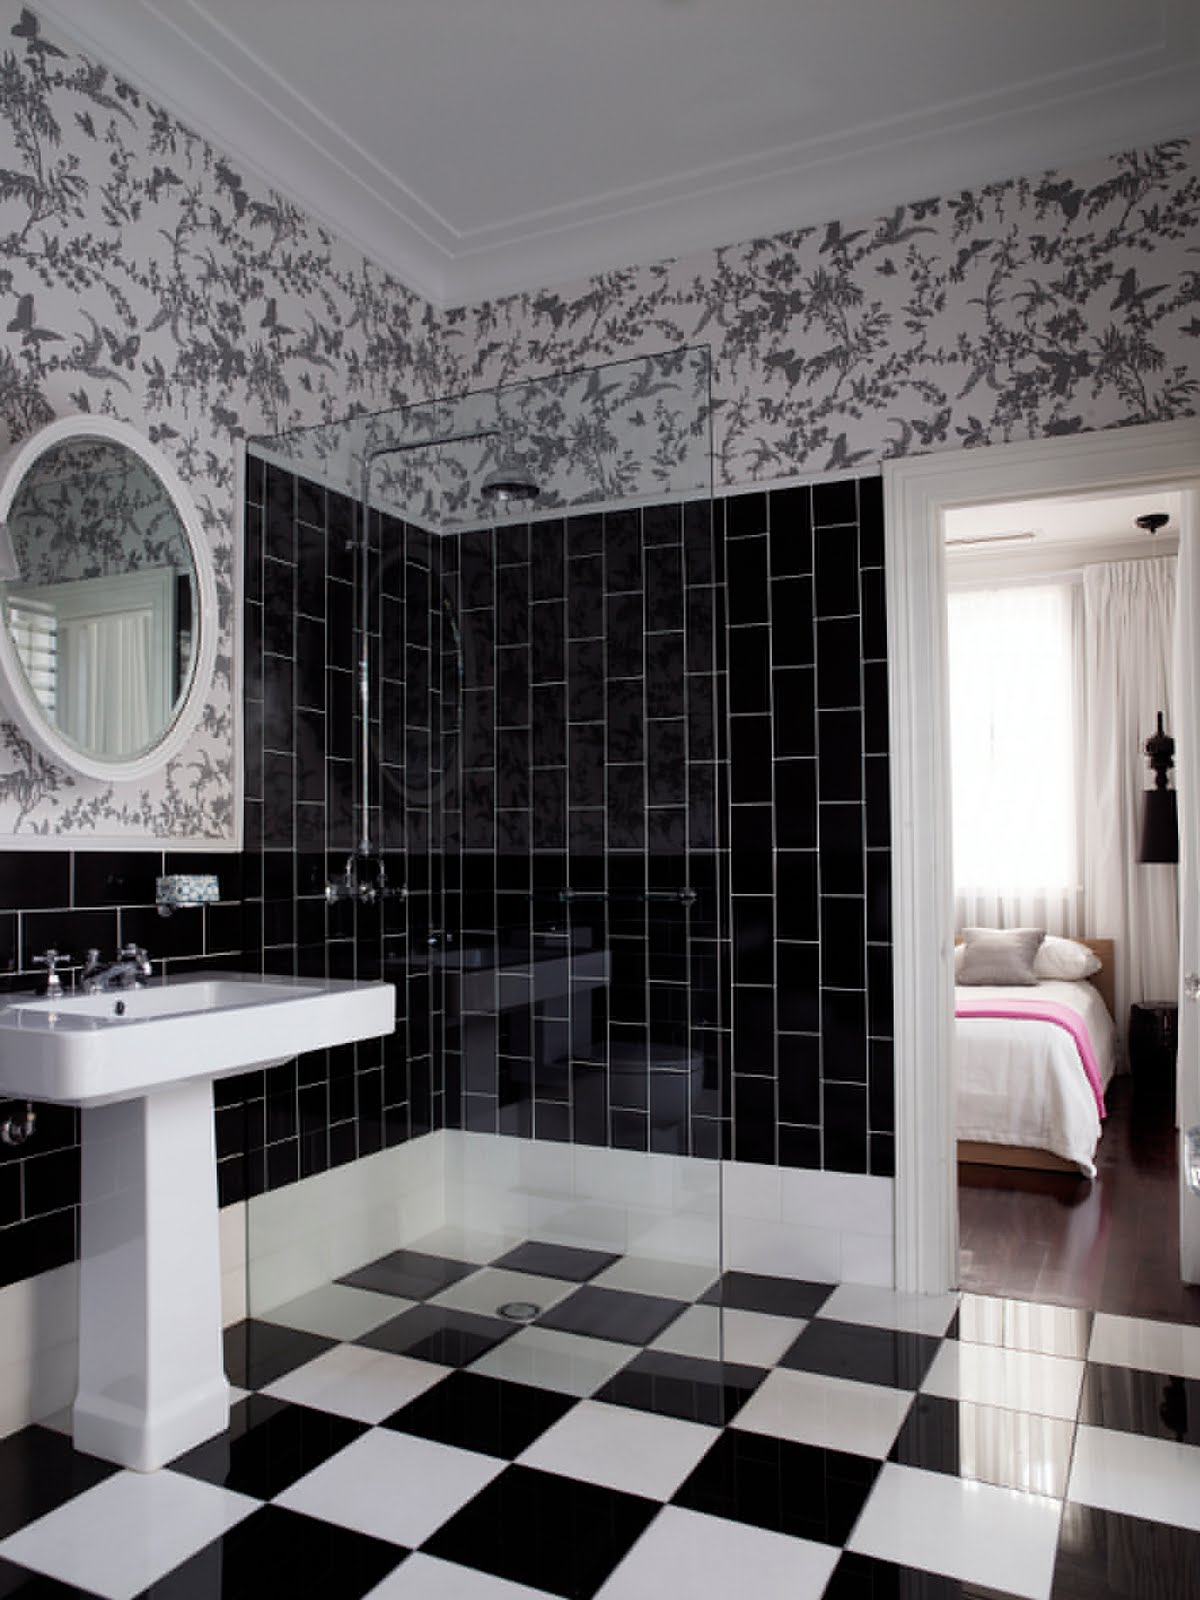 House Macabre bathroom subway tiles